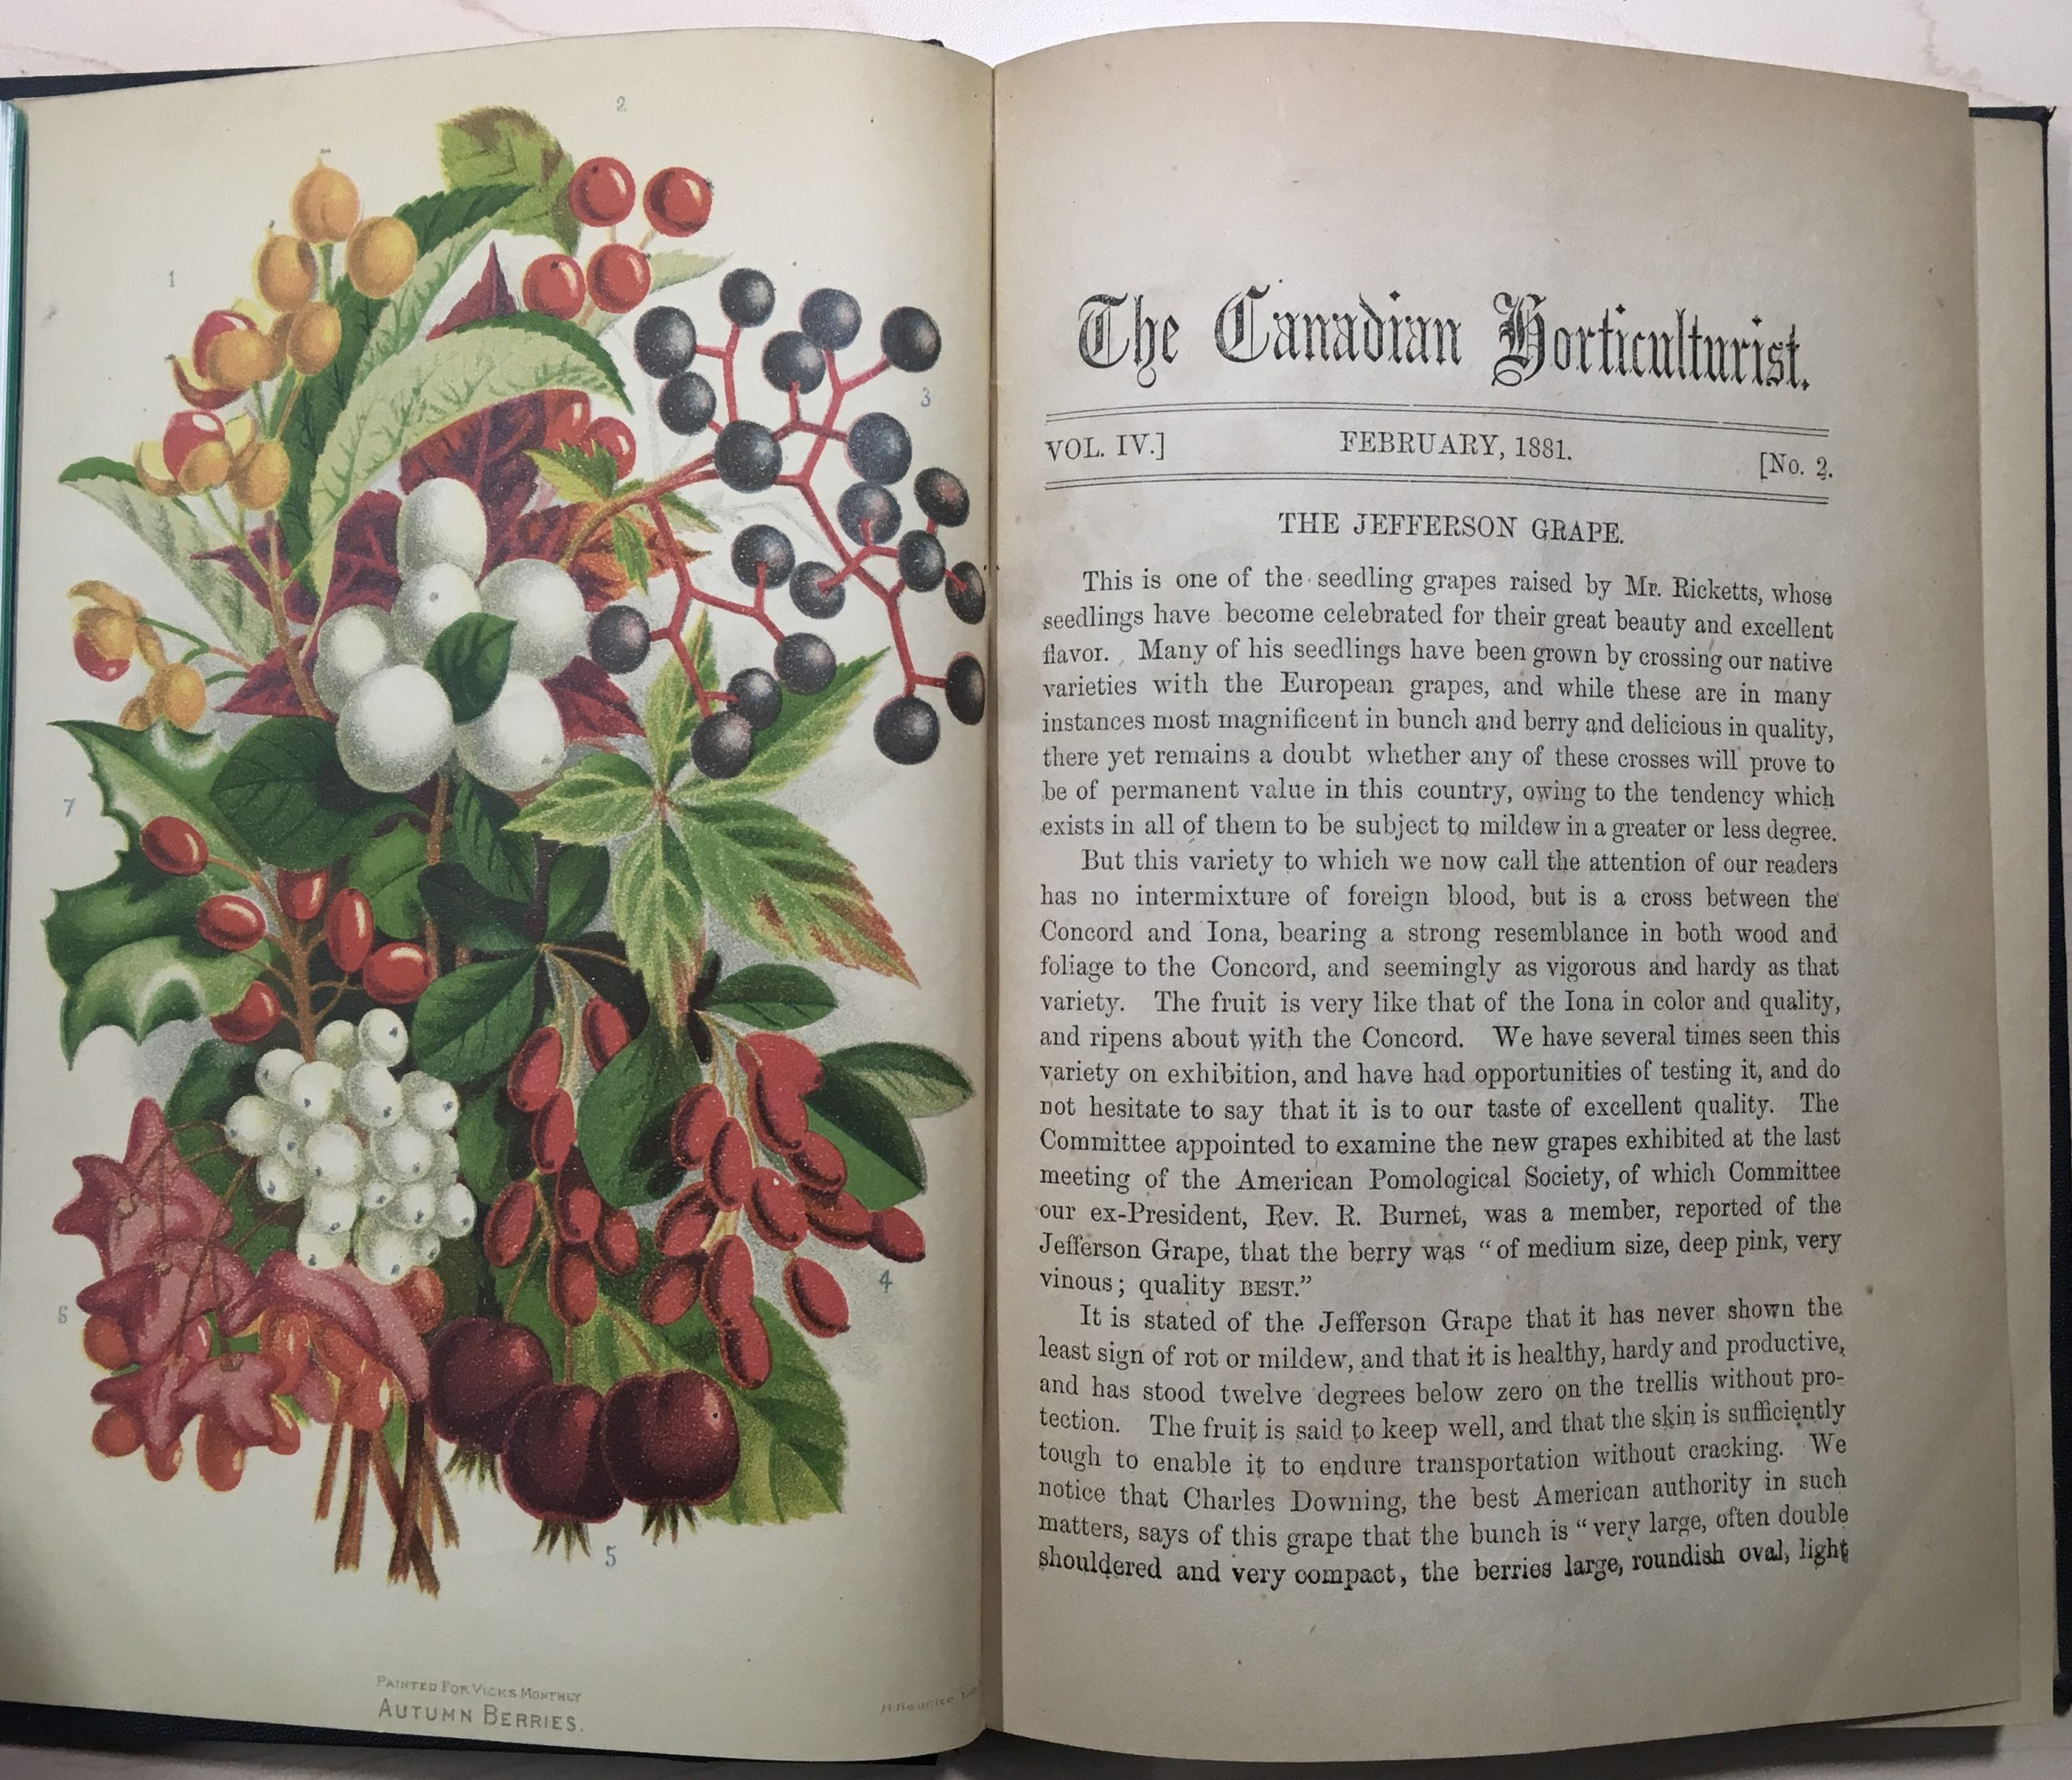 open book with flower illustration on left and text on right